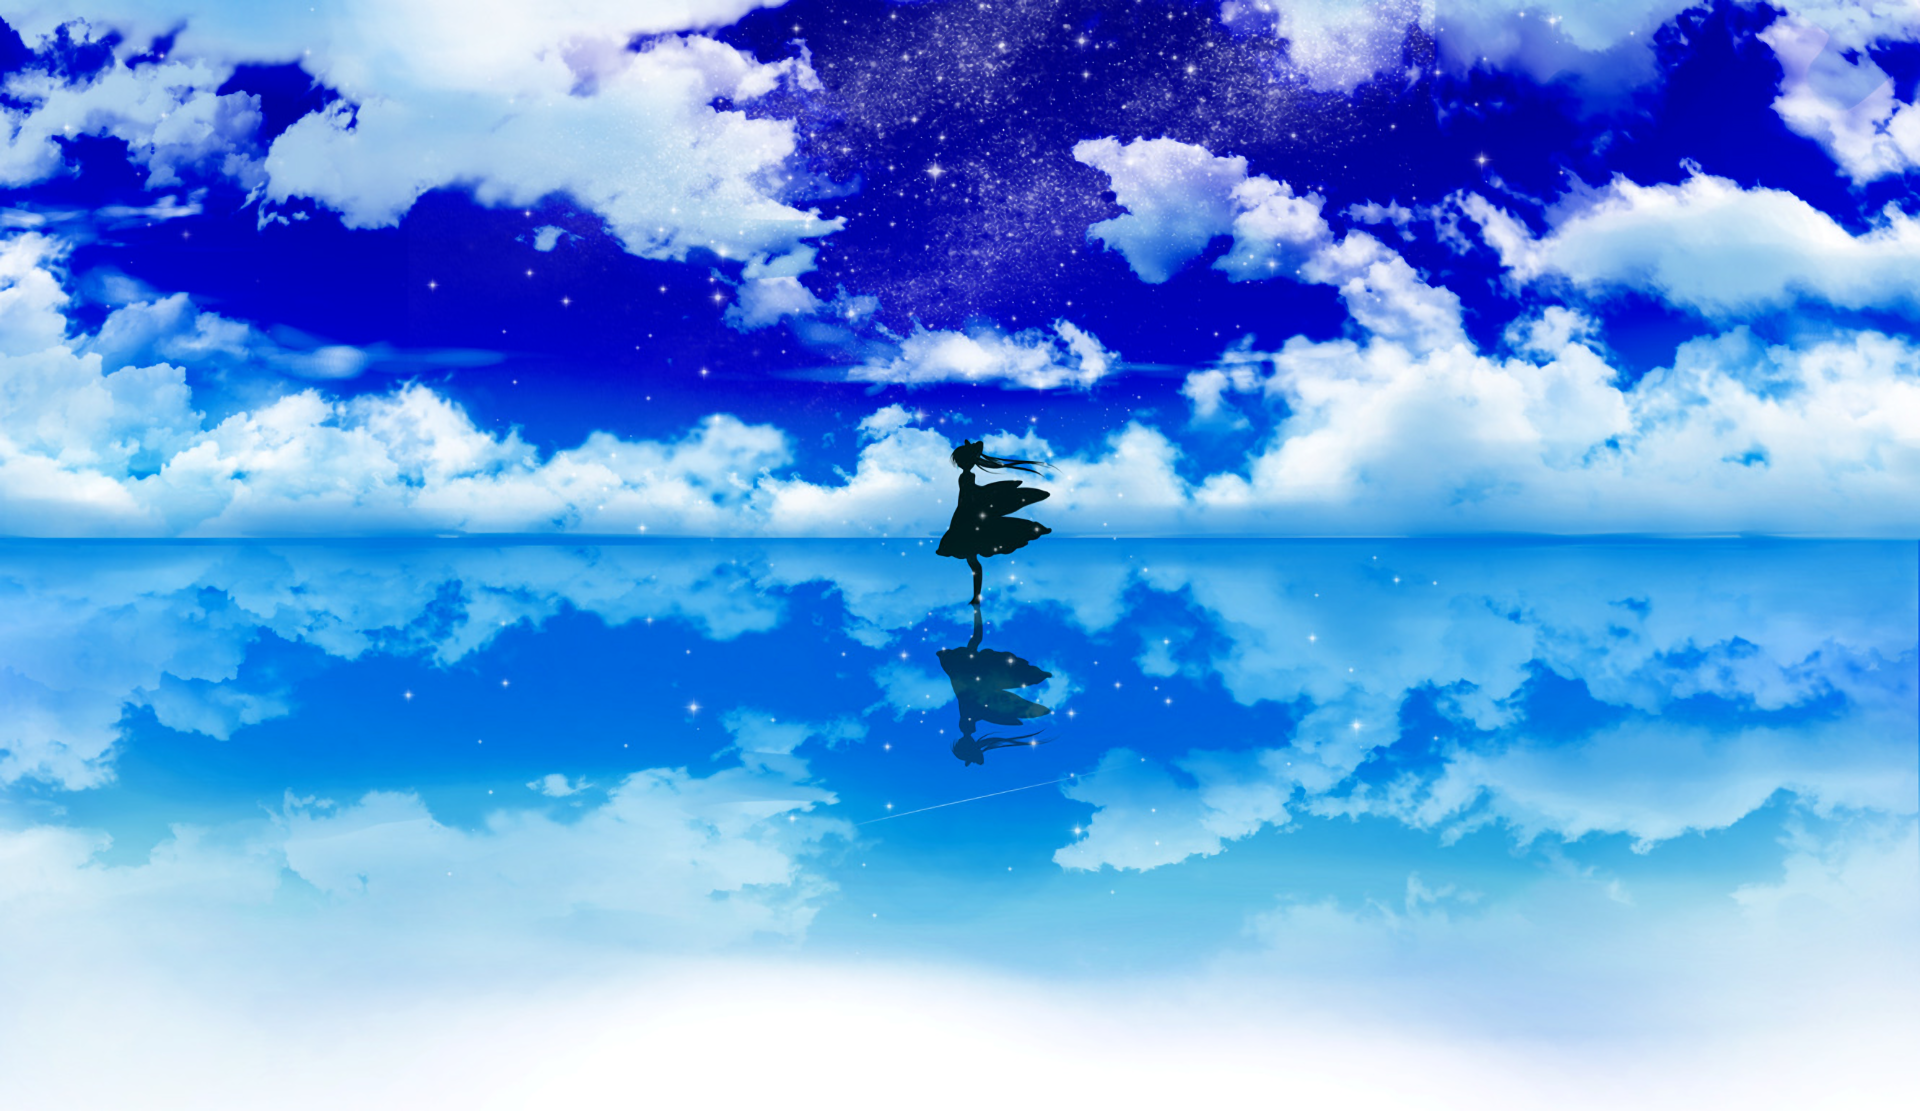 Wallpapers ID:702273